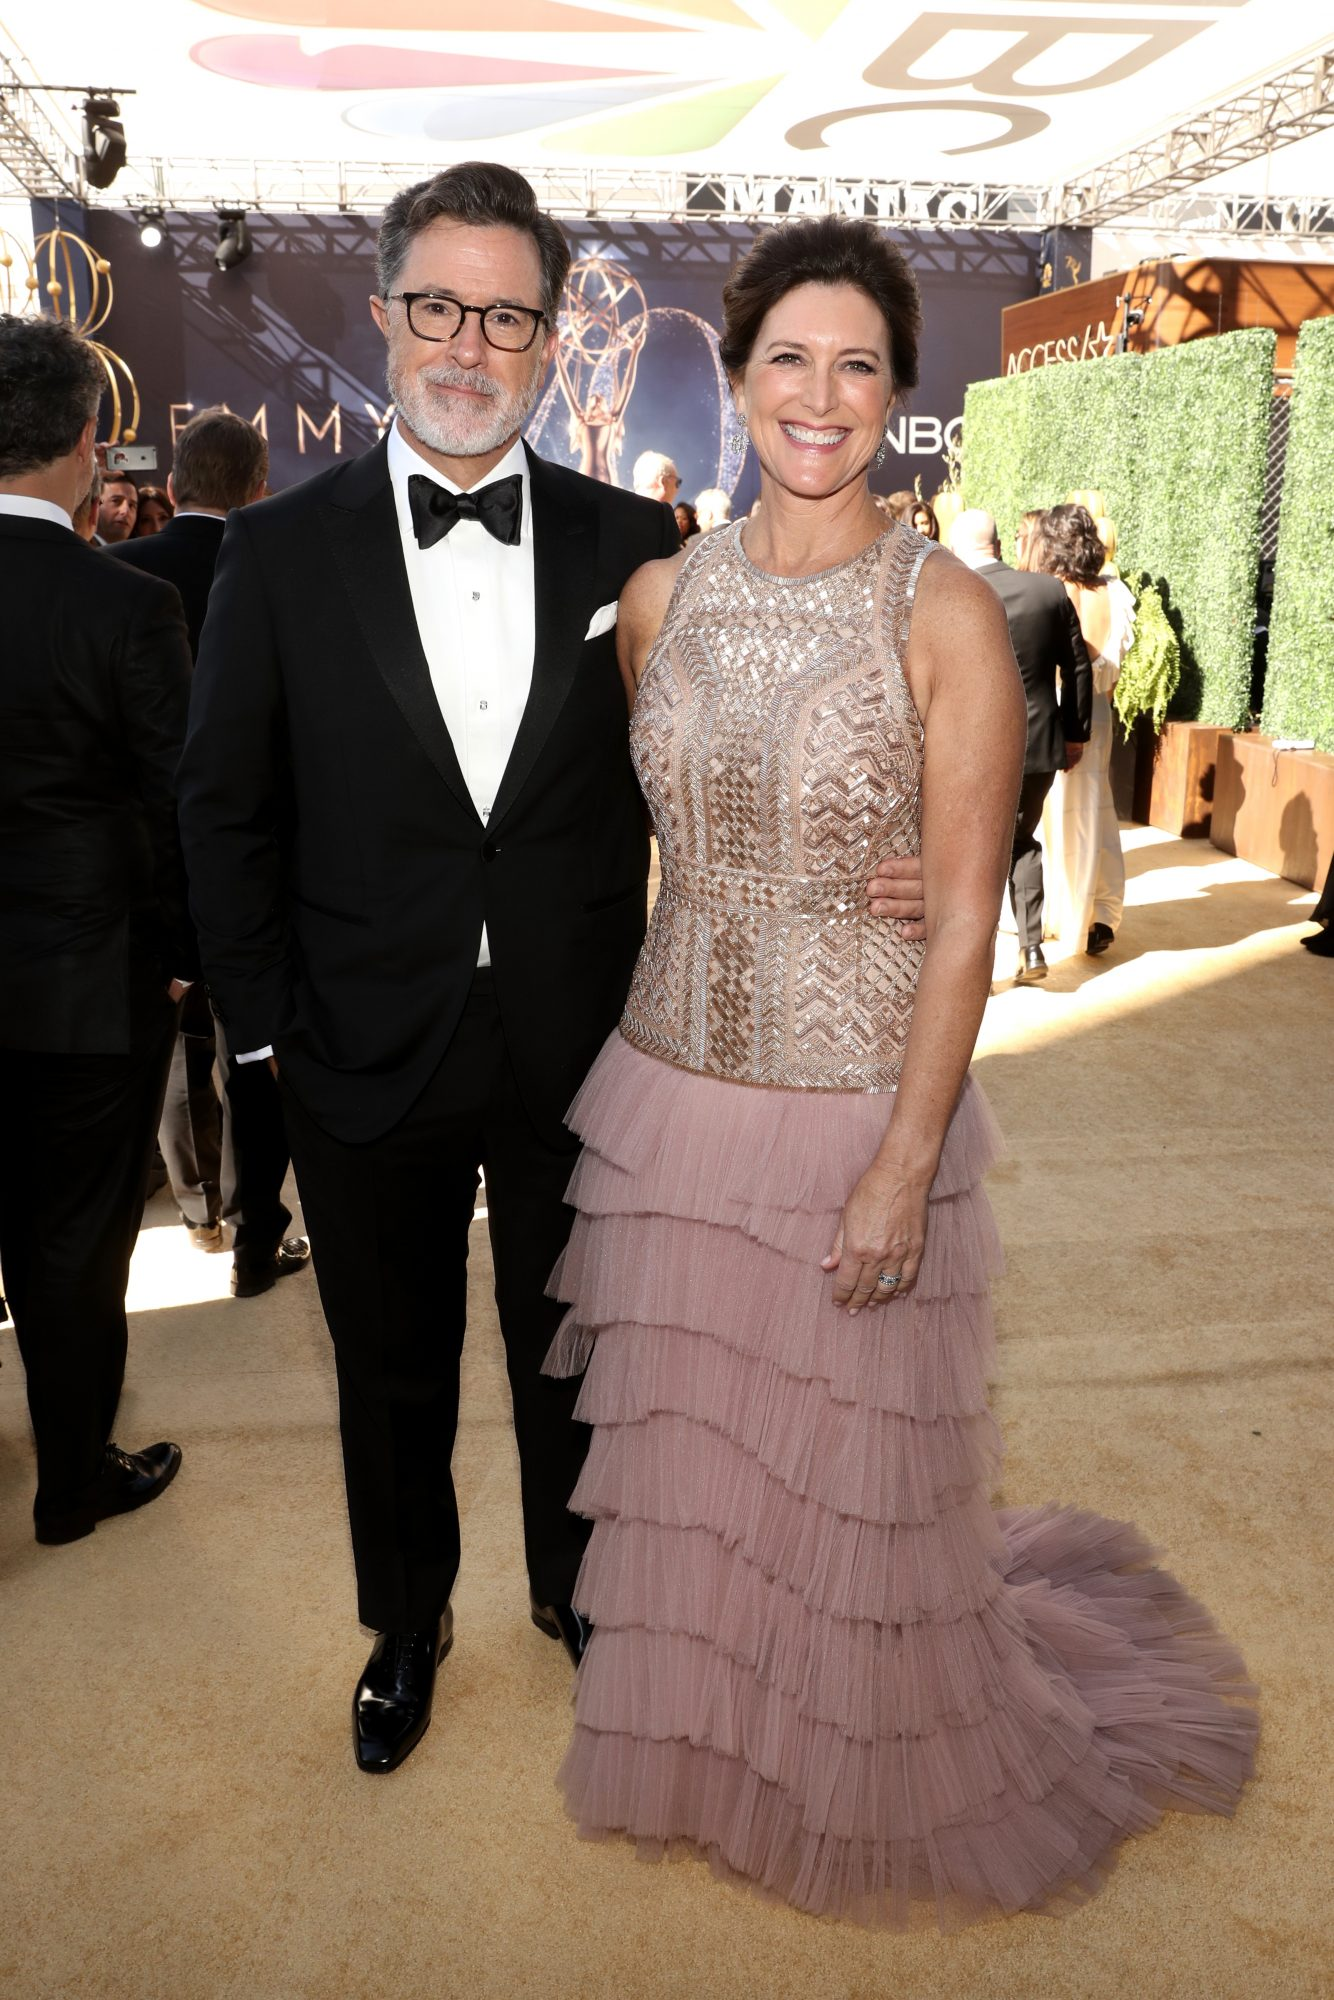 stephen colbert and evelyn mcgee-colbert emmys 2018